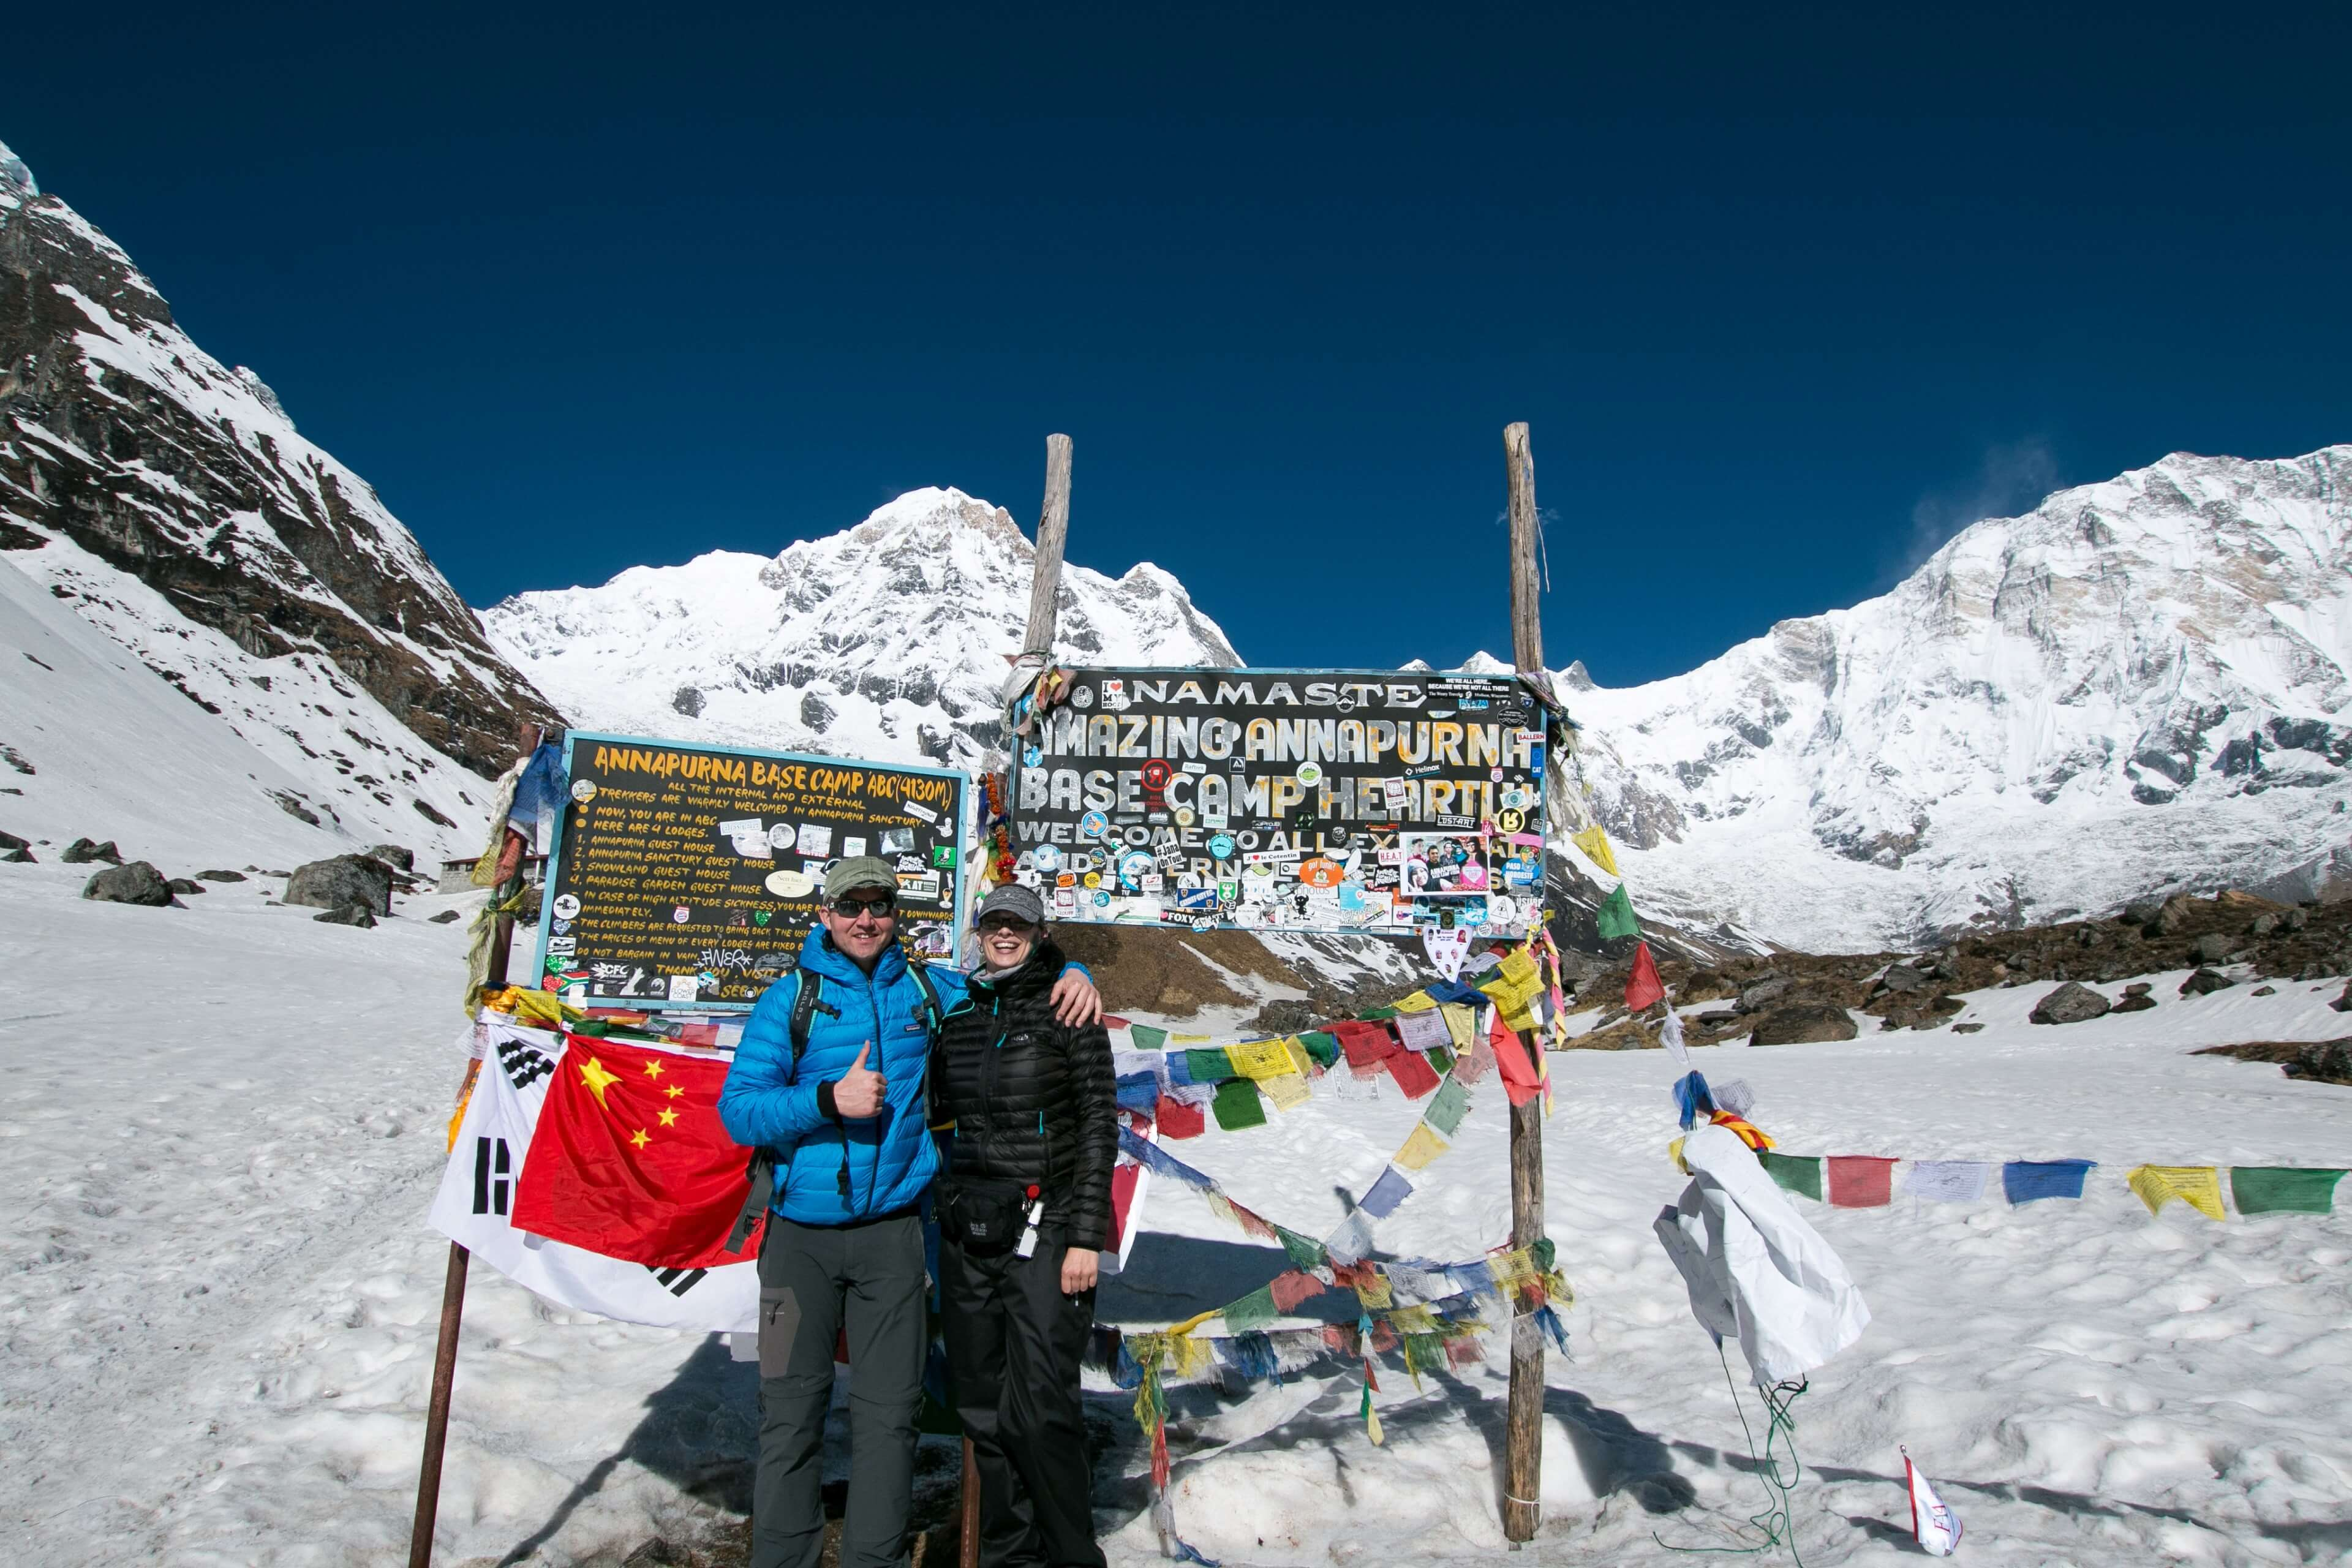 We Made It To Annapurna Base Camp  at 4130m